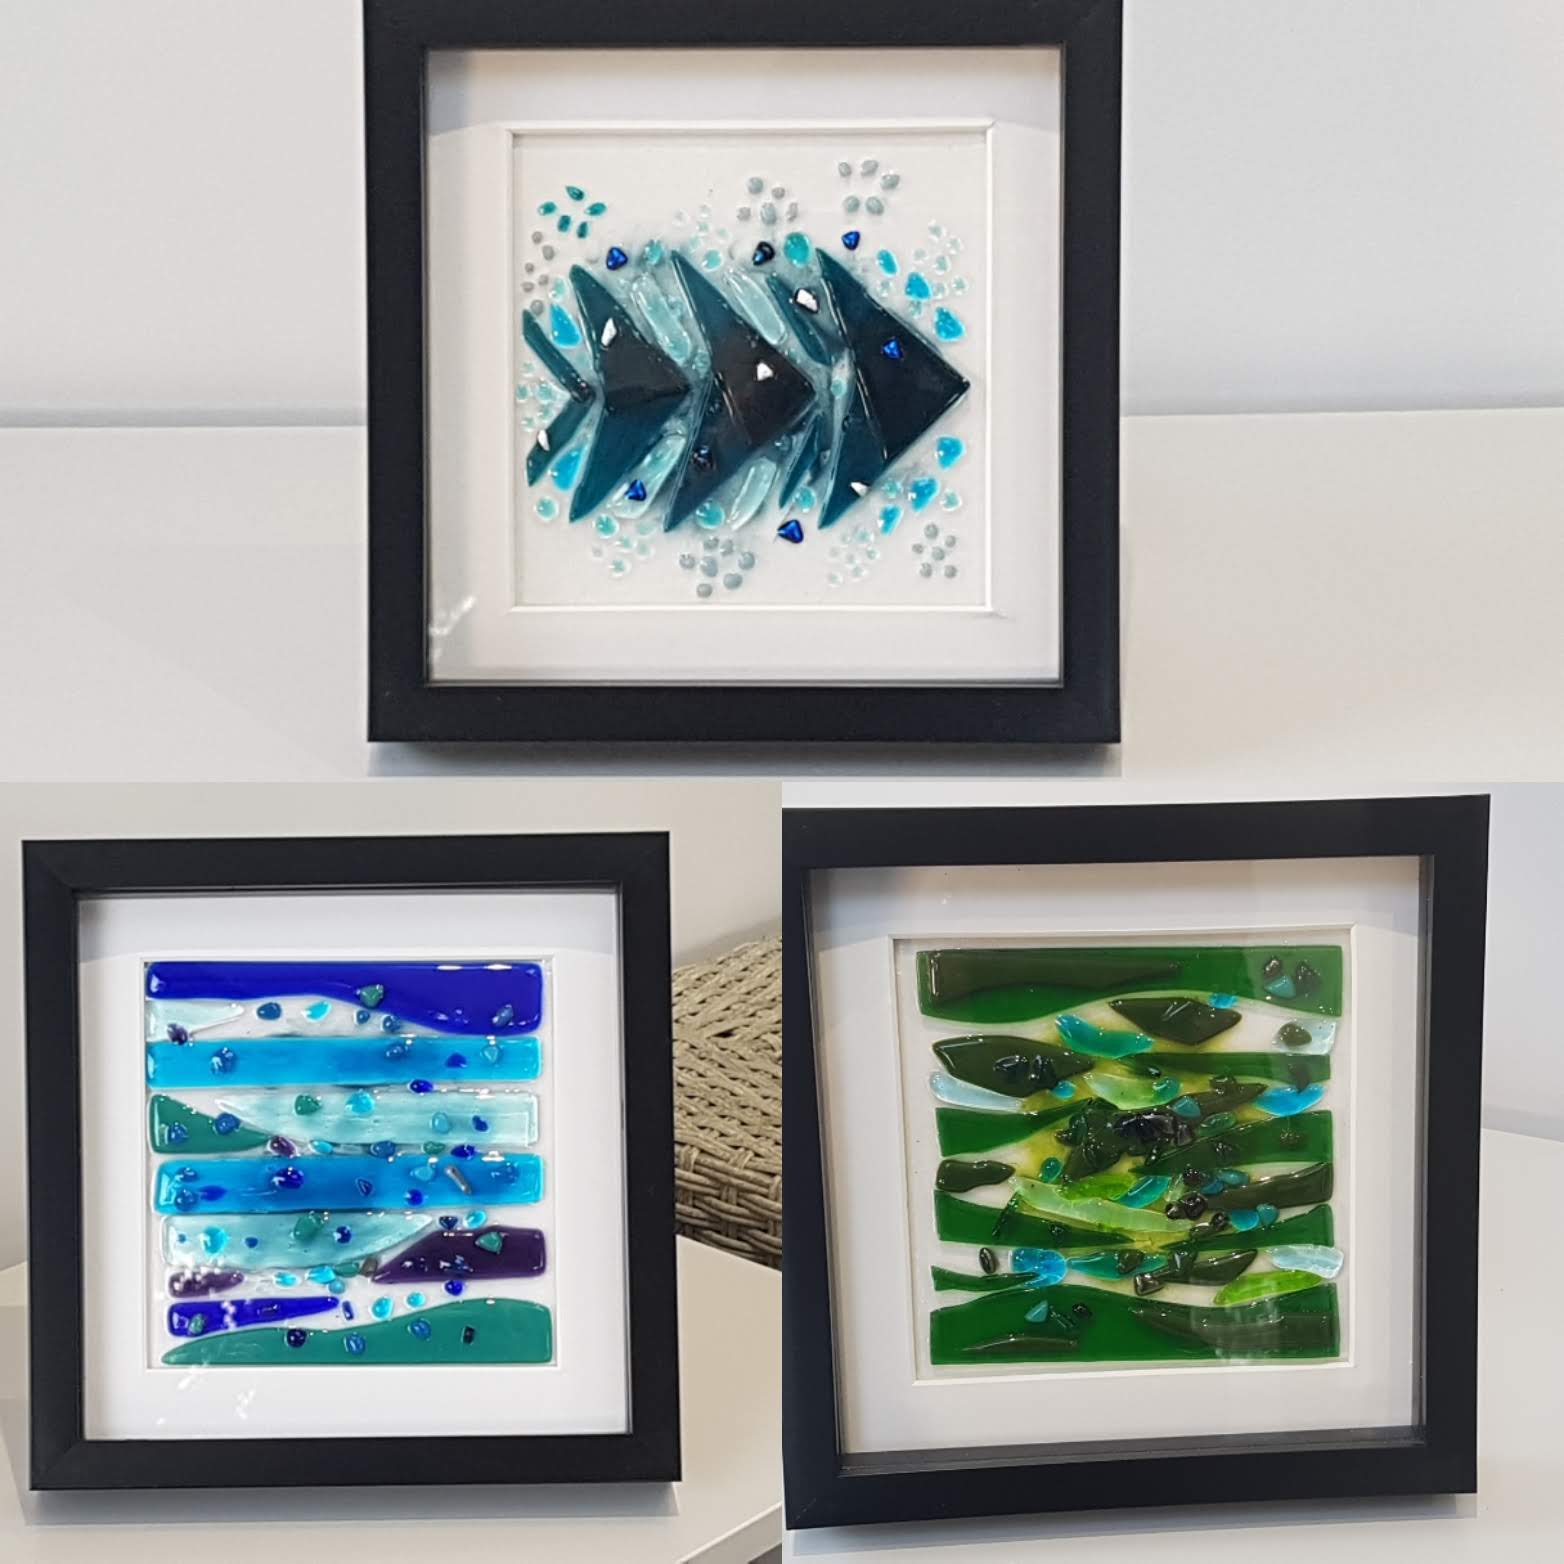 Framed Fused Glass Art - Various Abstract Designs